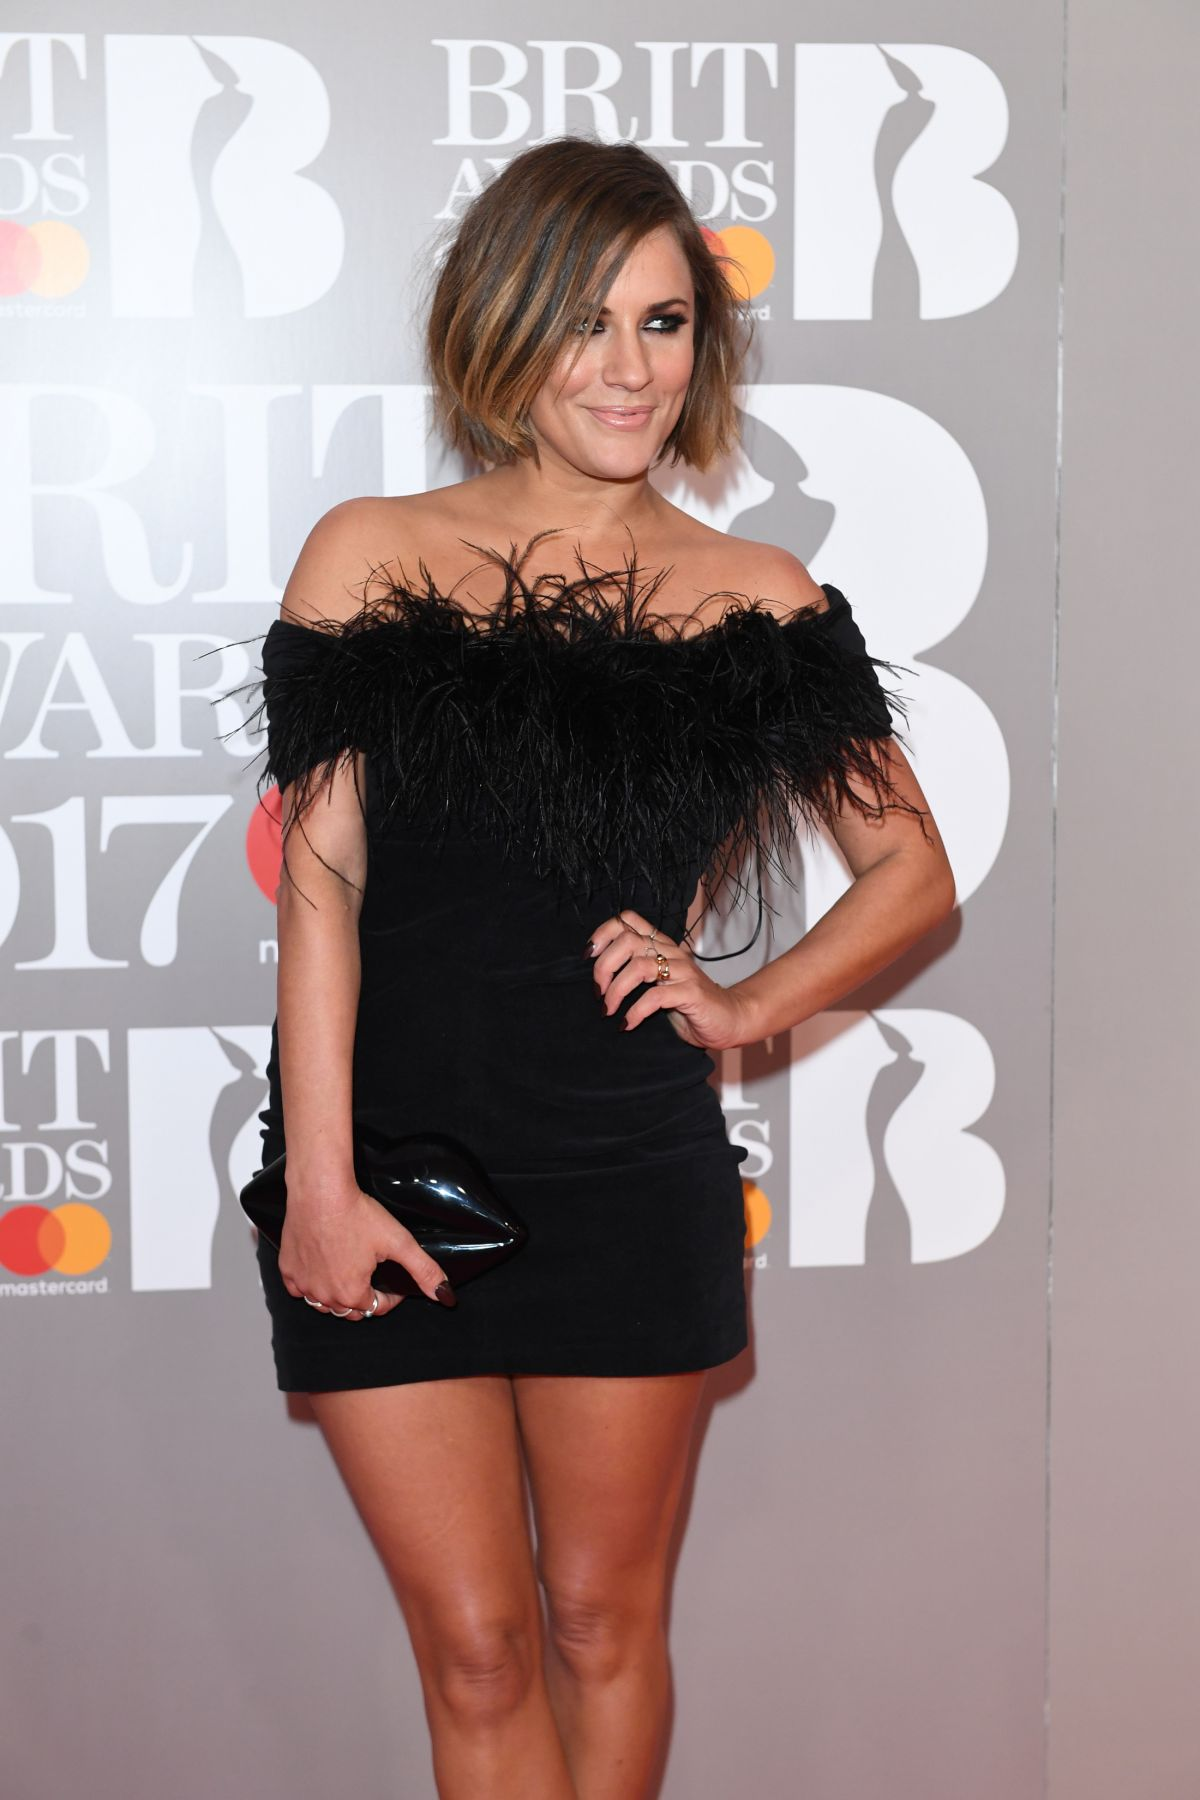 CAROLINE FLACK at Brit Awards 2017 in London 02/22/2017